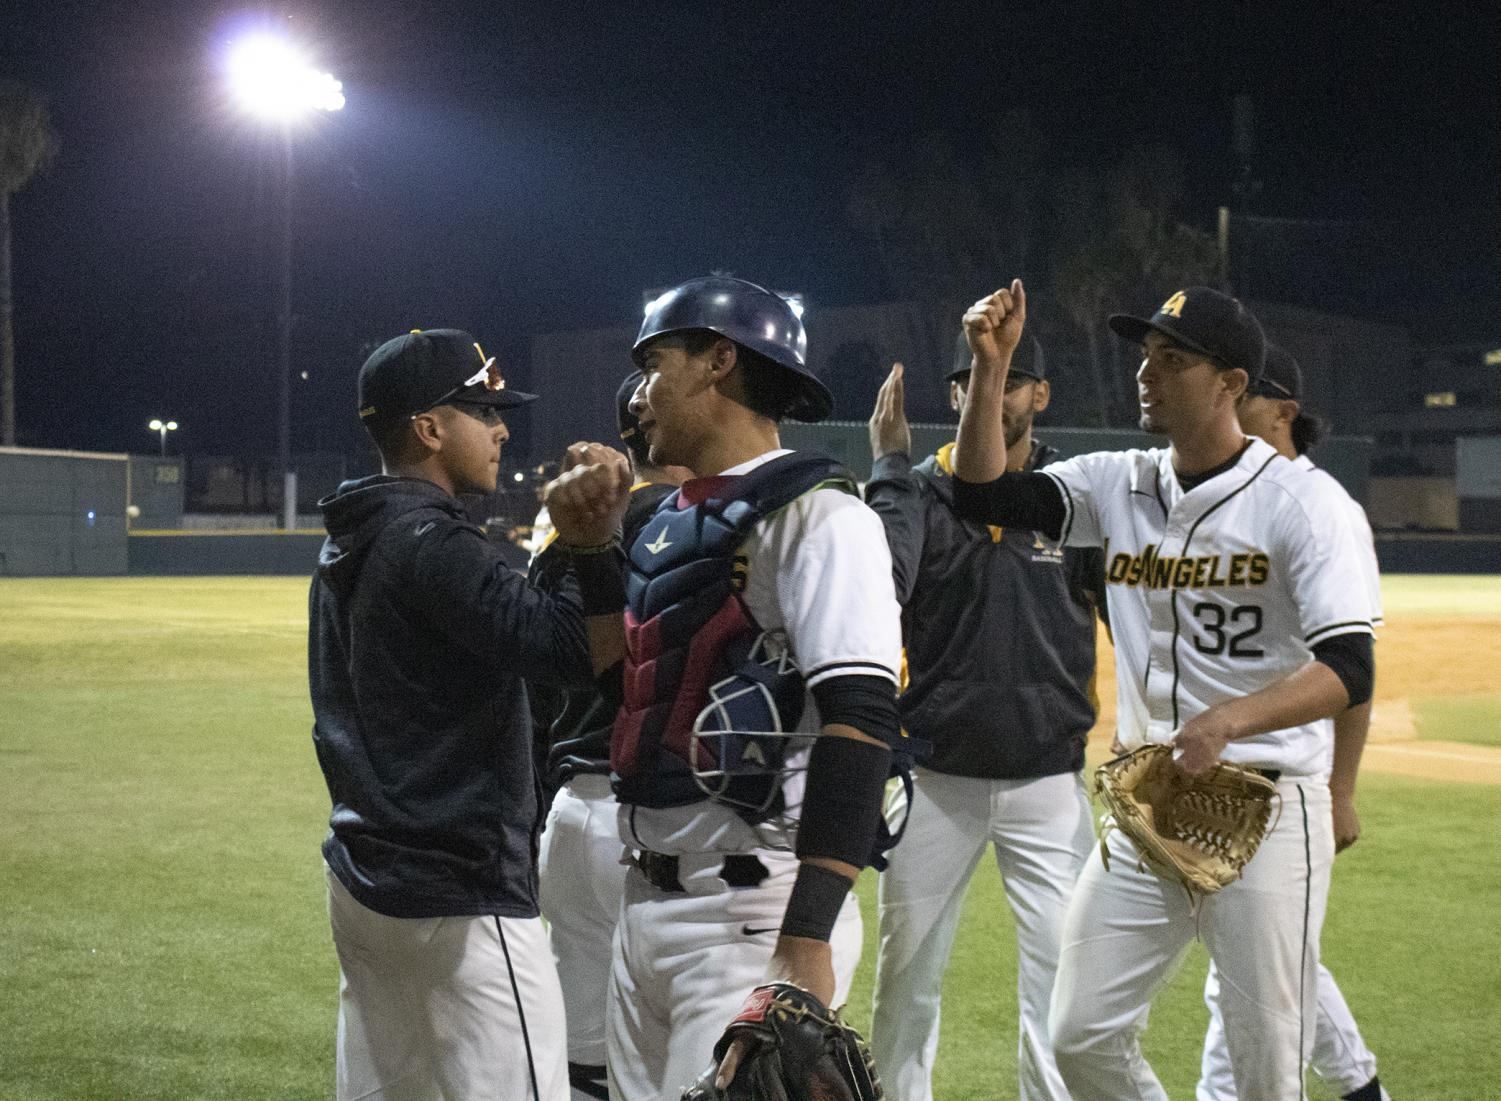 The baseball team celebrates a victory at the second game this past Friday against Northwest Nazarene